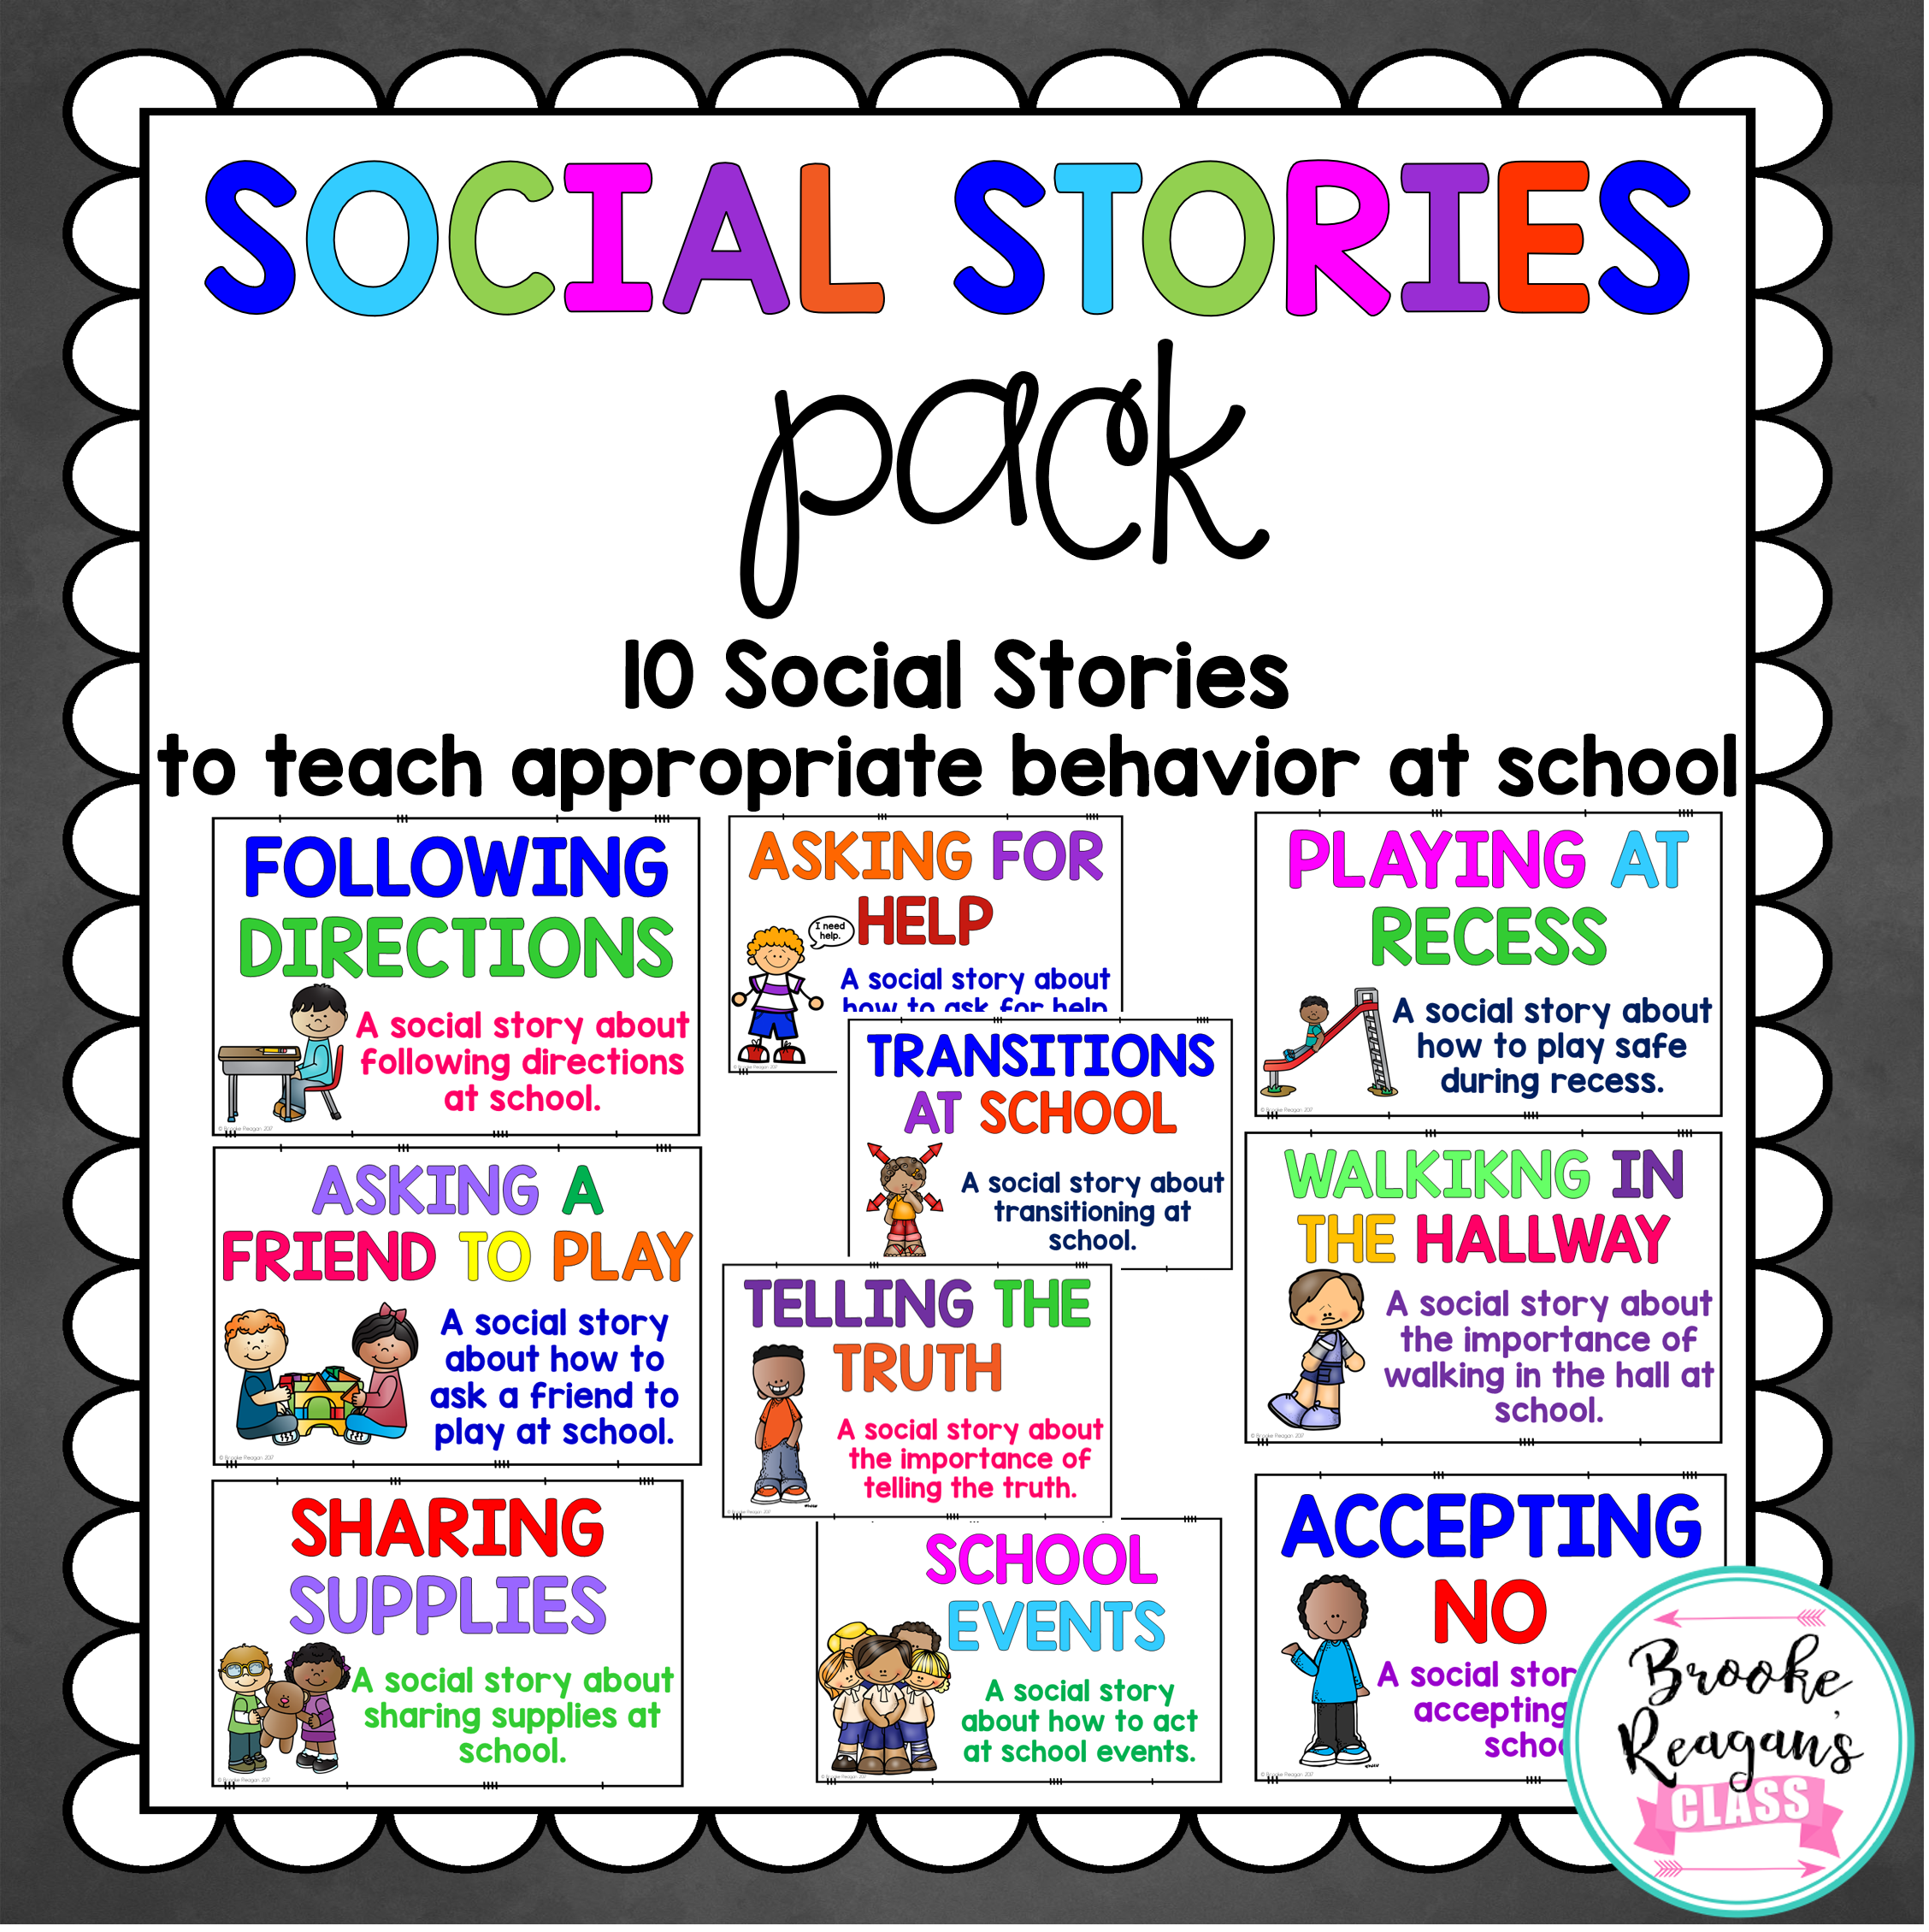 Social Stories Volume 1 12 Social Stories Teaching